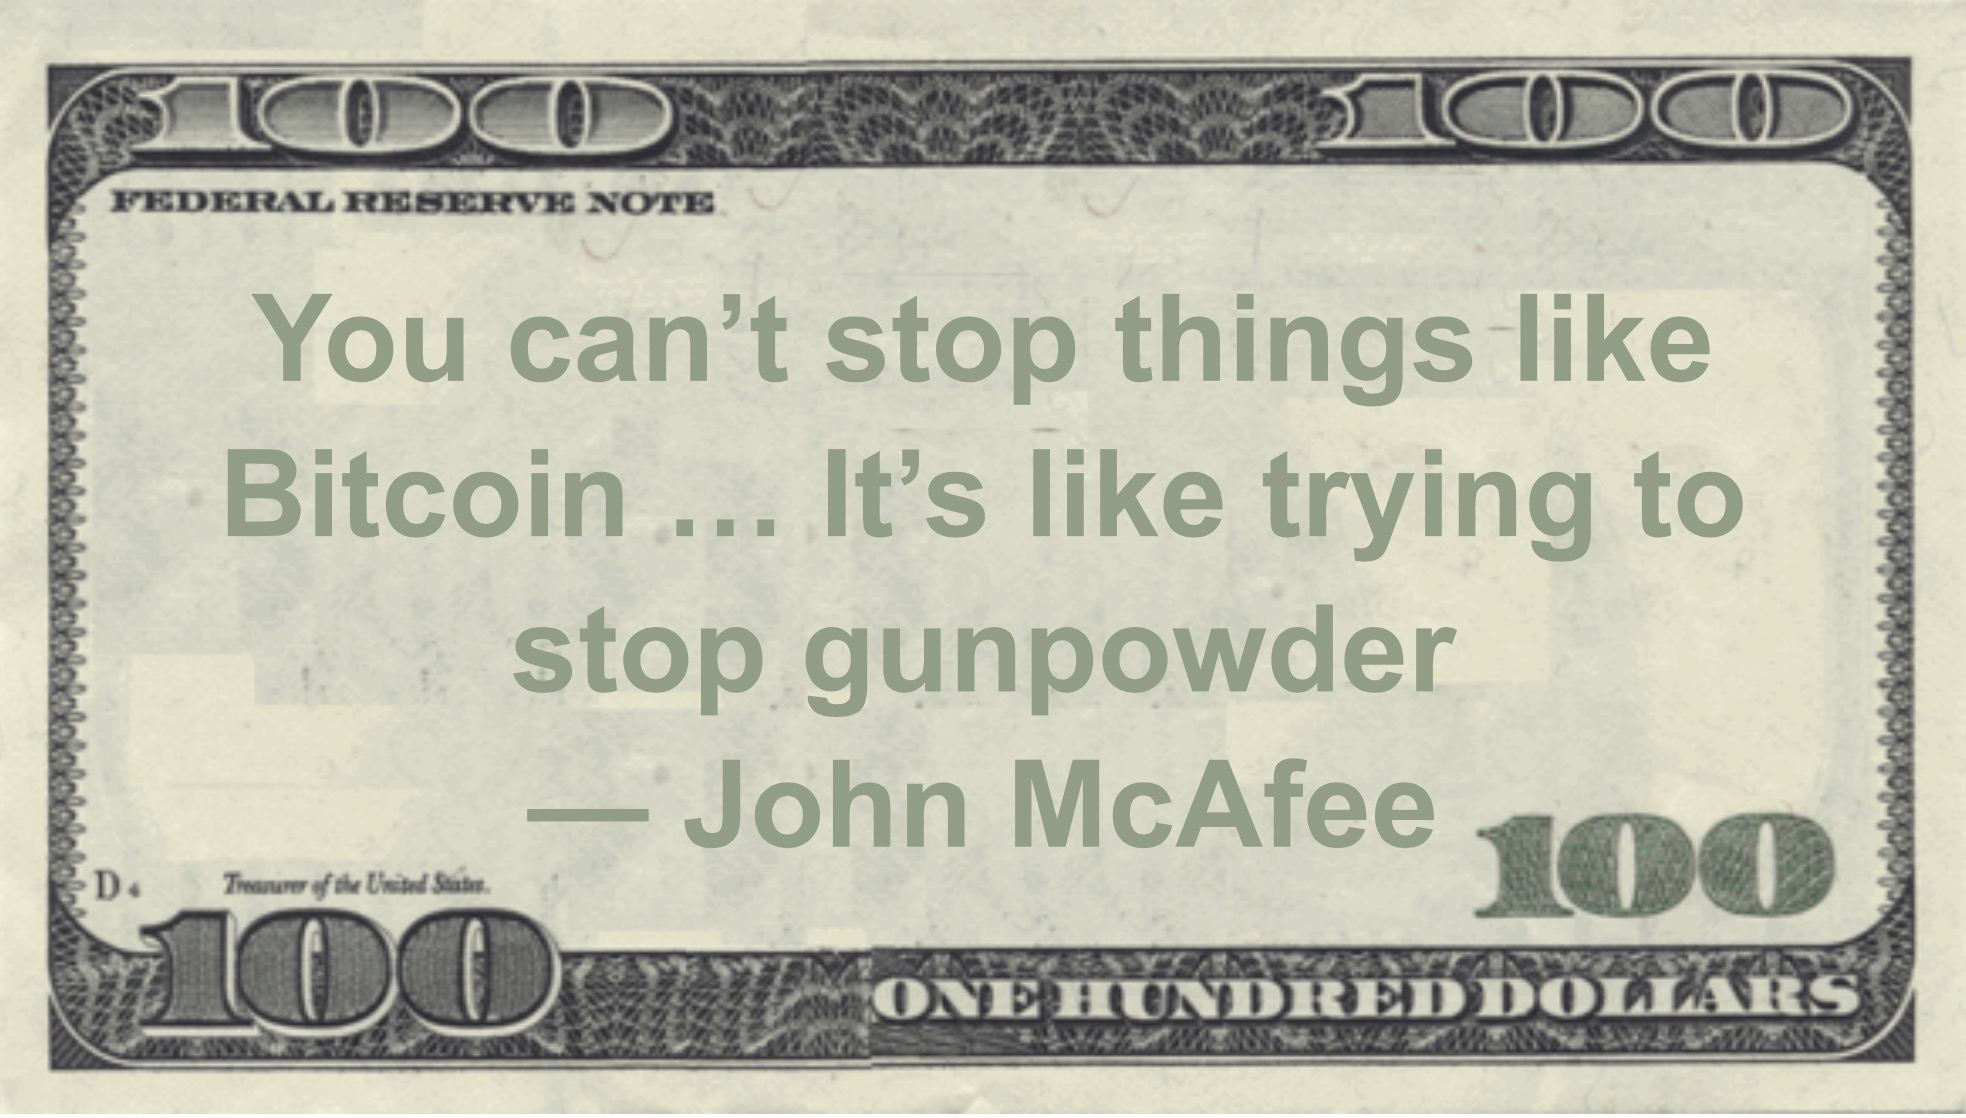 You can't stop things like Bitcoin ... It's like trying to stop gunpowder Quote